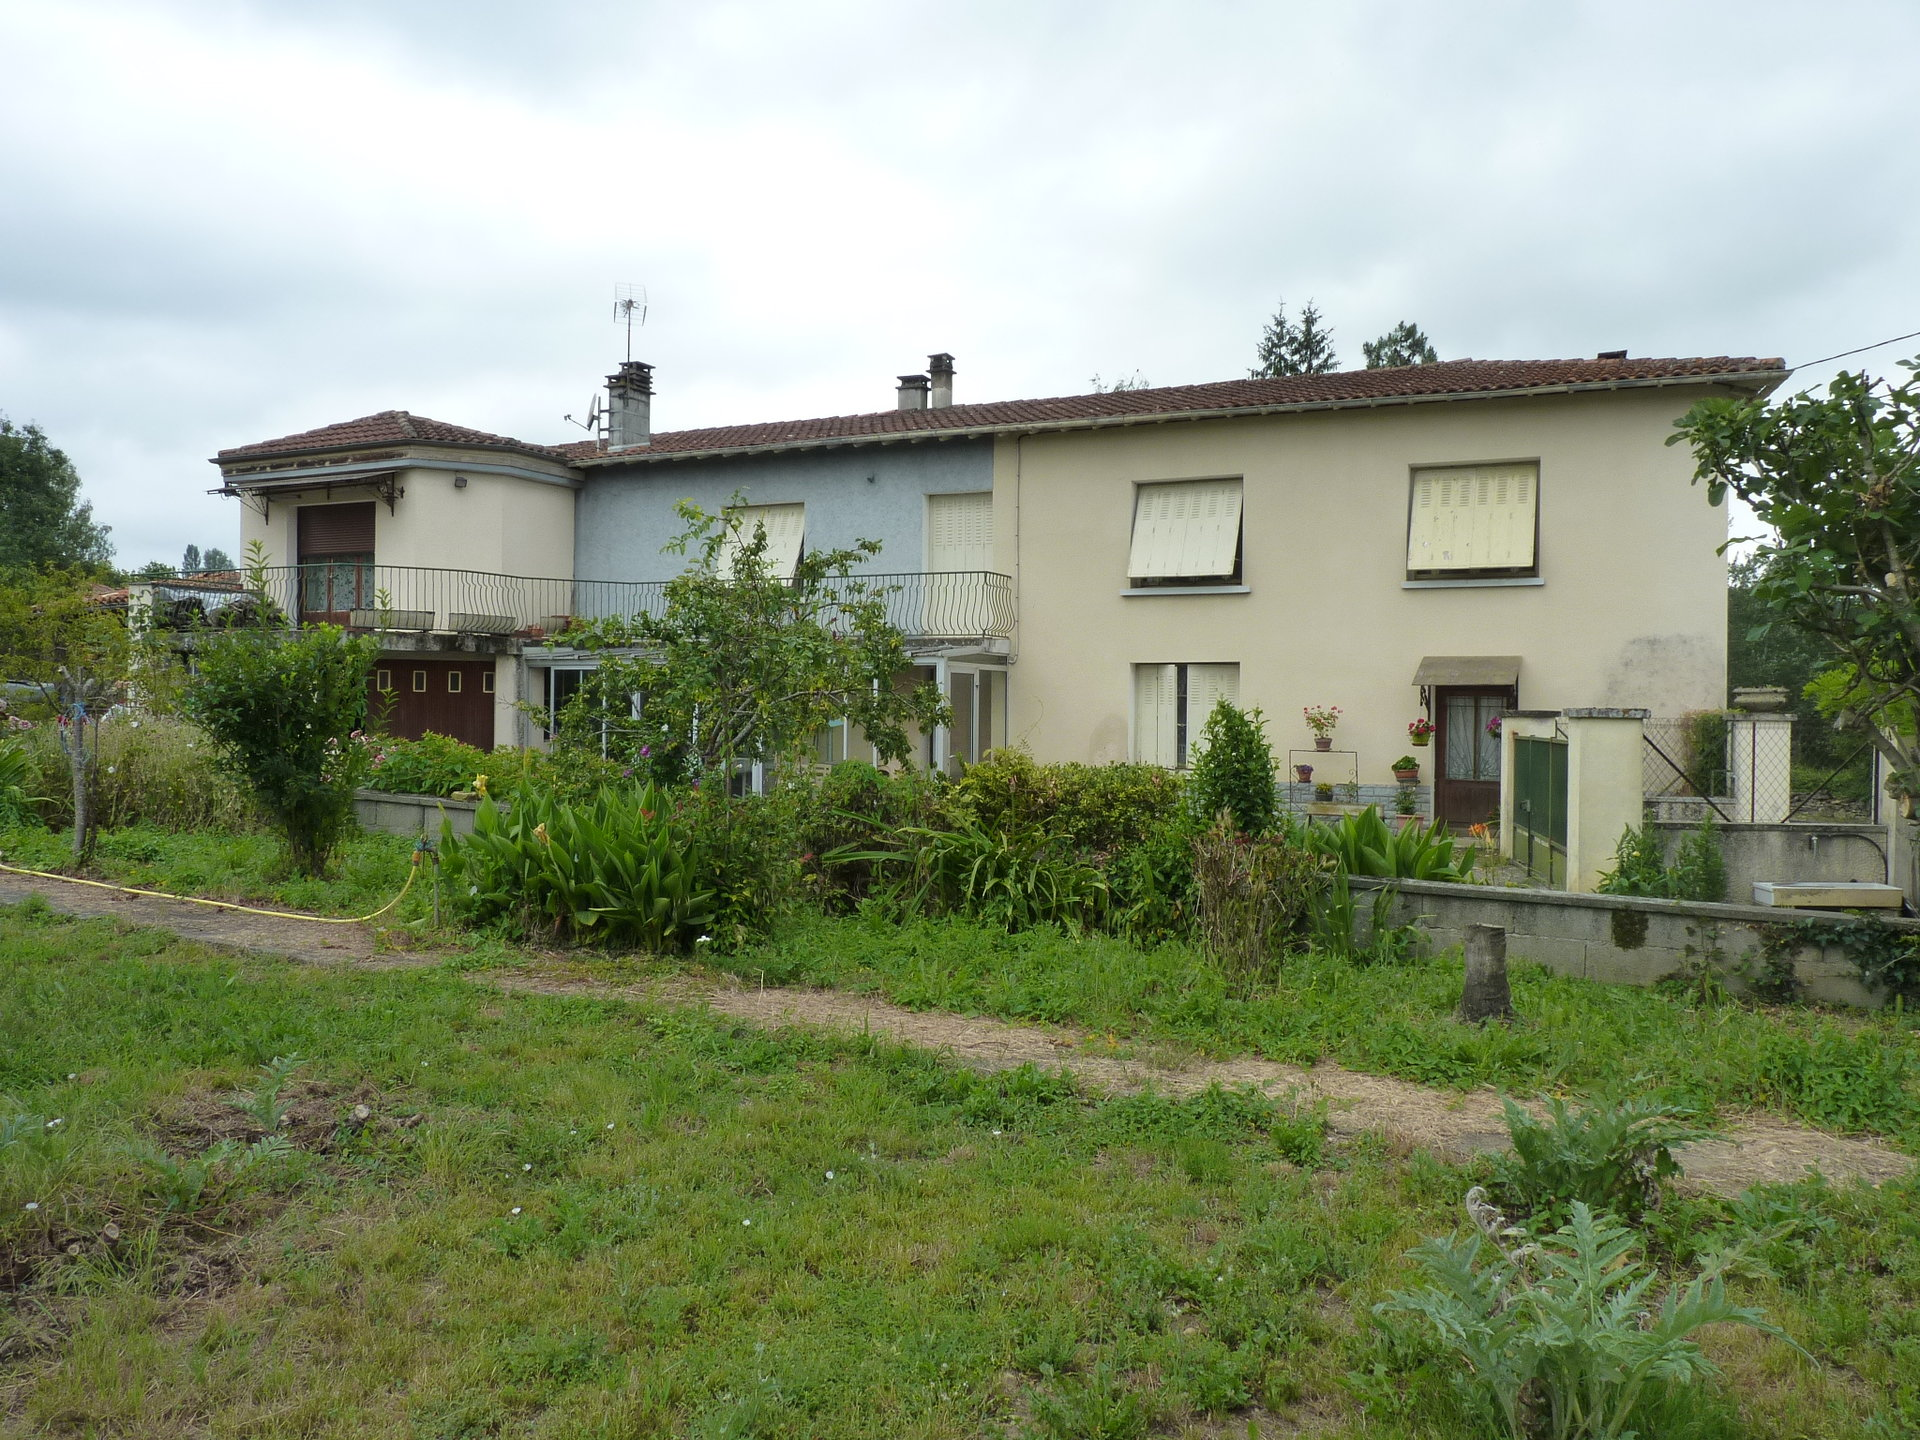 2 Bedroom House with Separate Apartment on 1900m² of constructible land